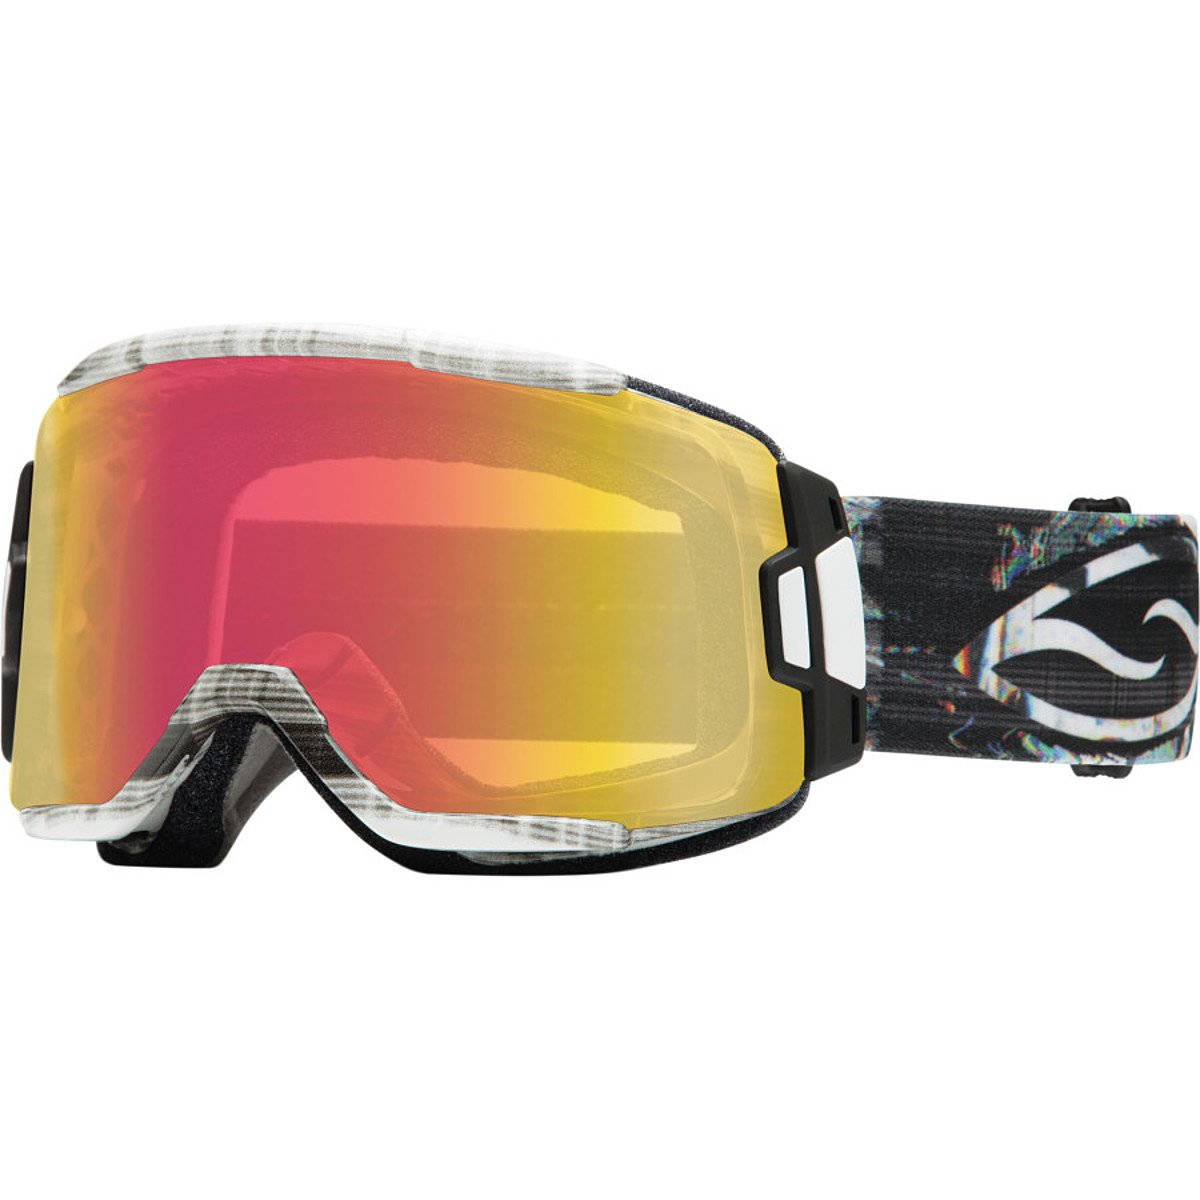 Smith Optics Squad Cylindrical Series Winter Sport Snowmobile Goggles Eyewear - Vertical Hold/Red Sensor / Medium